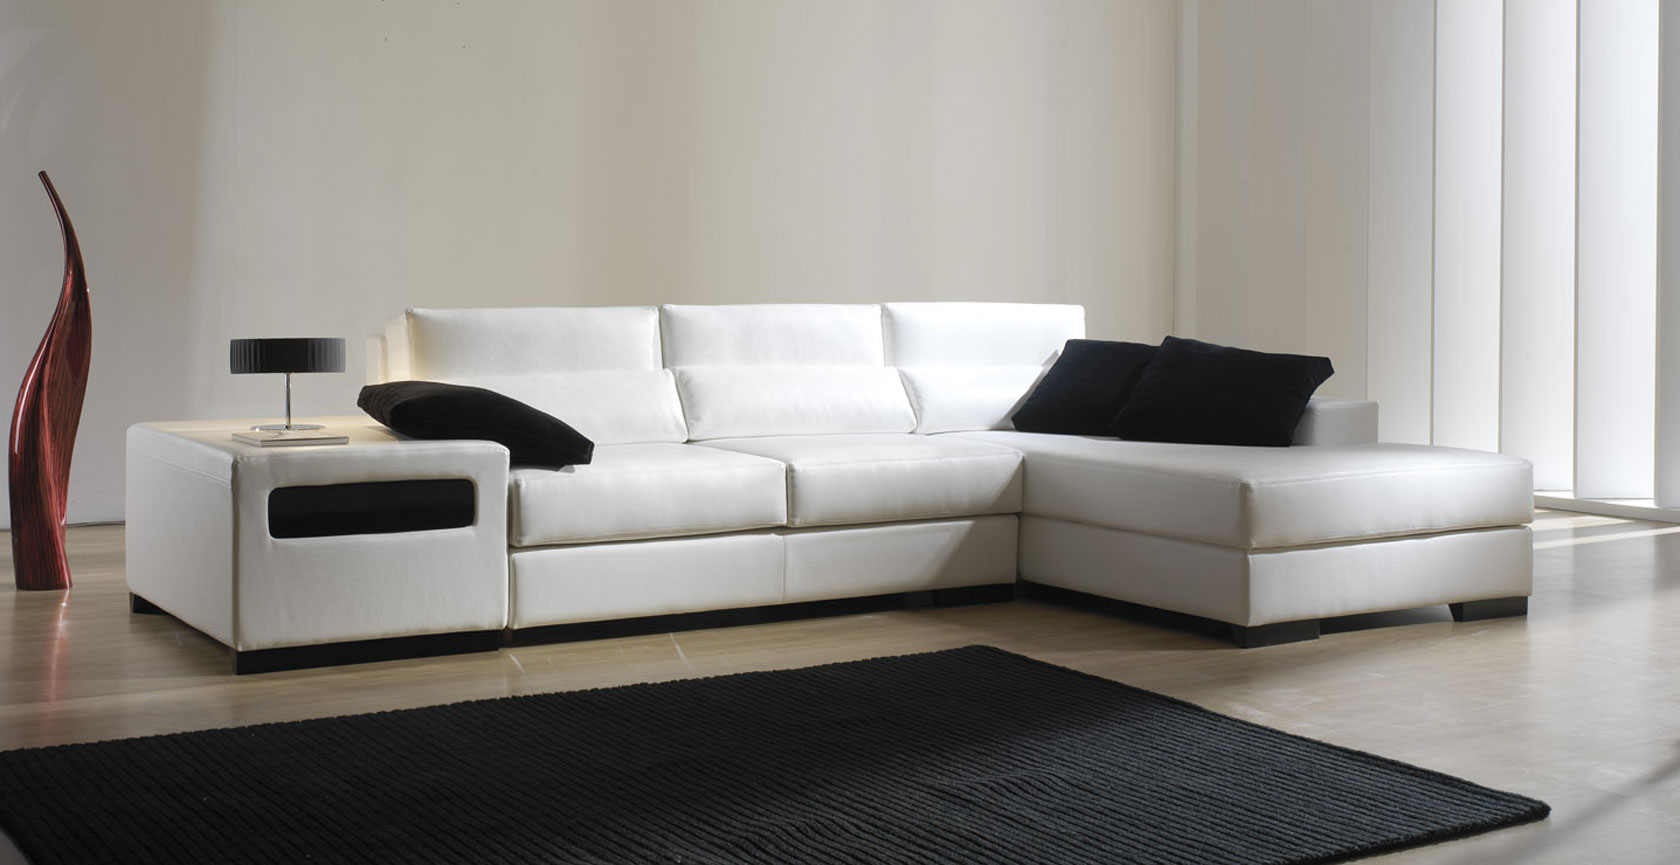 Fotos de sof s modernos pictures to pin on pinterest - Modelos de sofas modernos ...